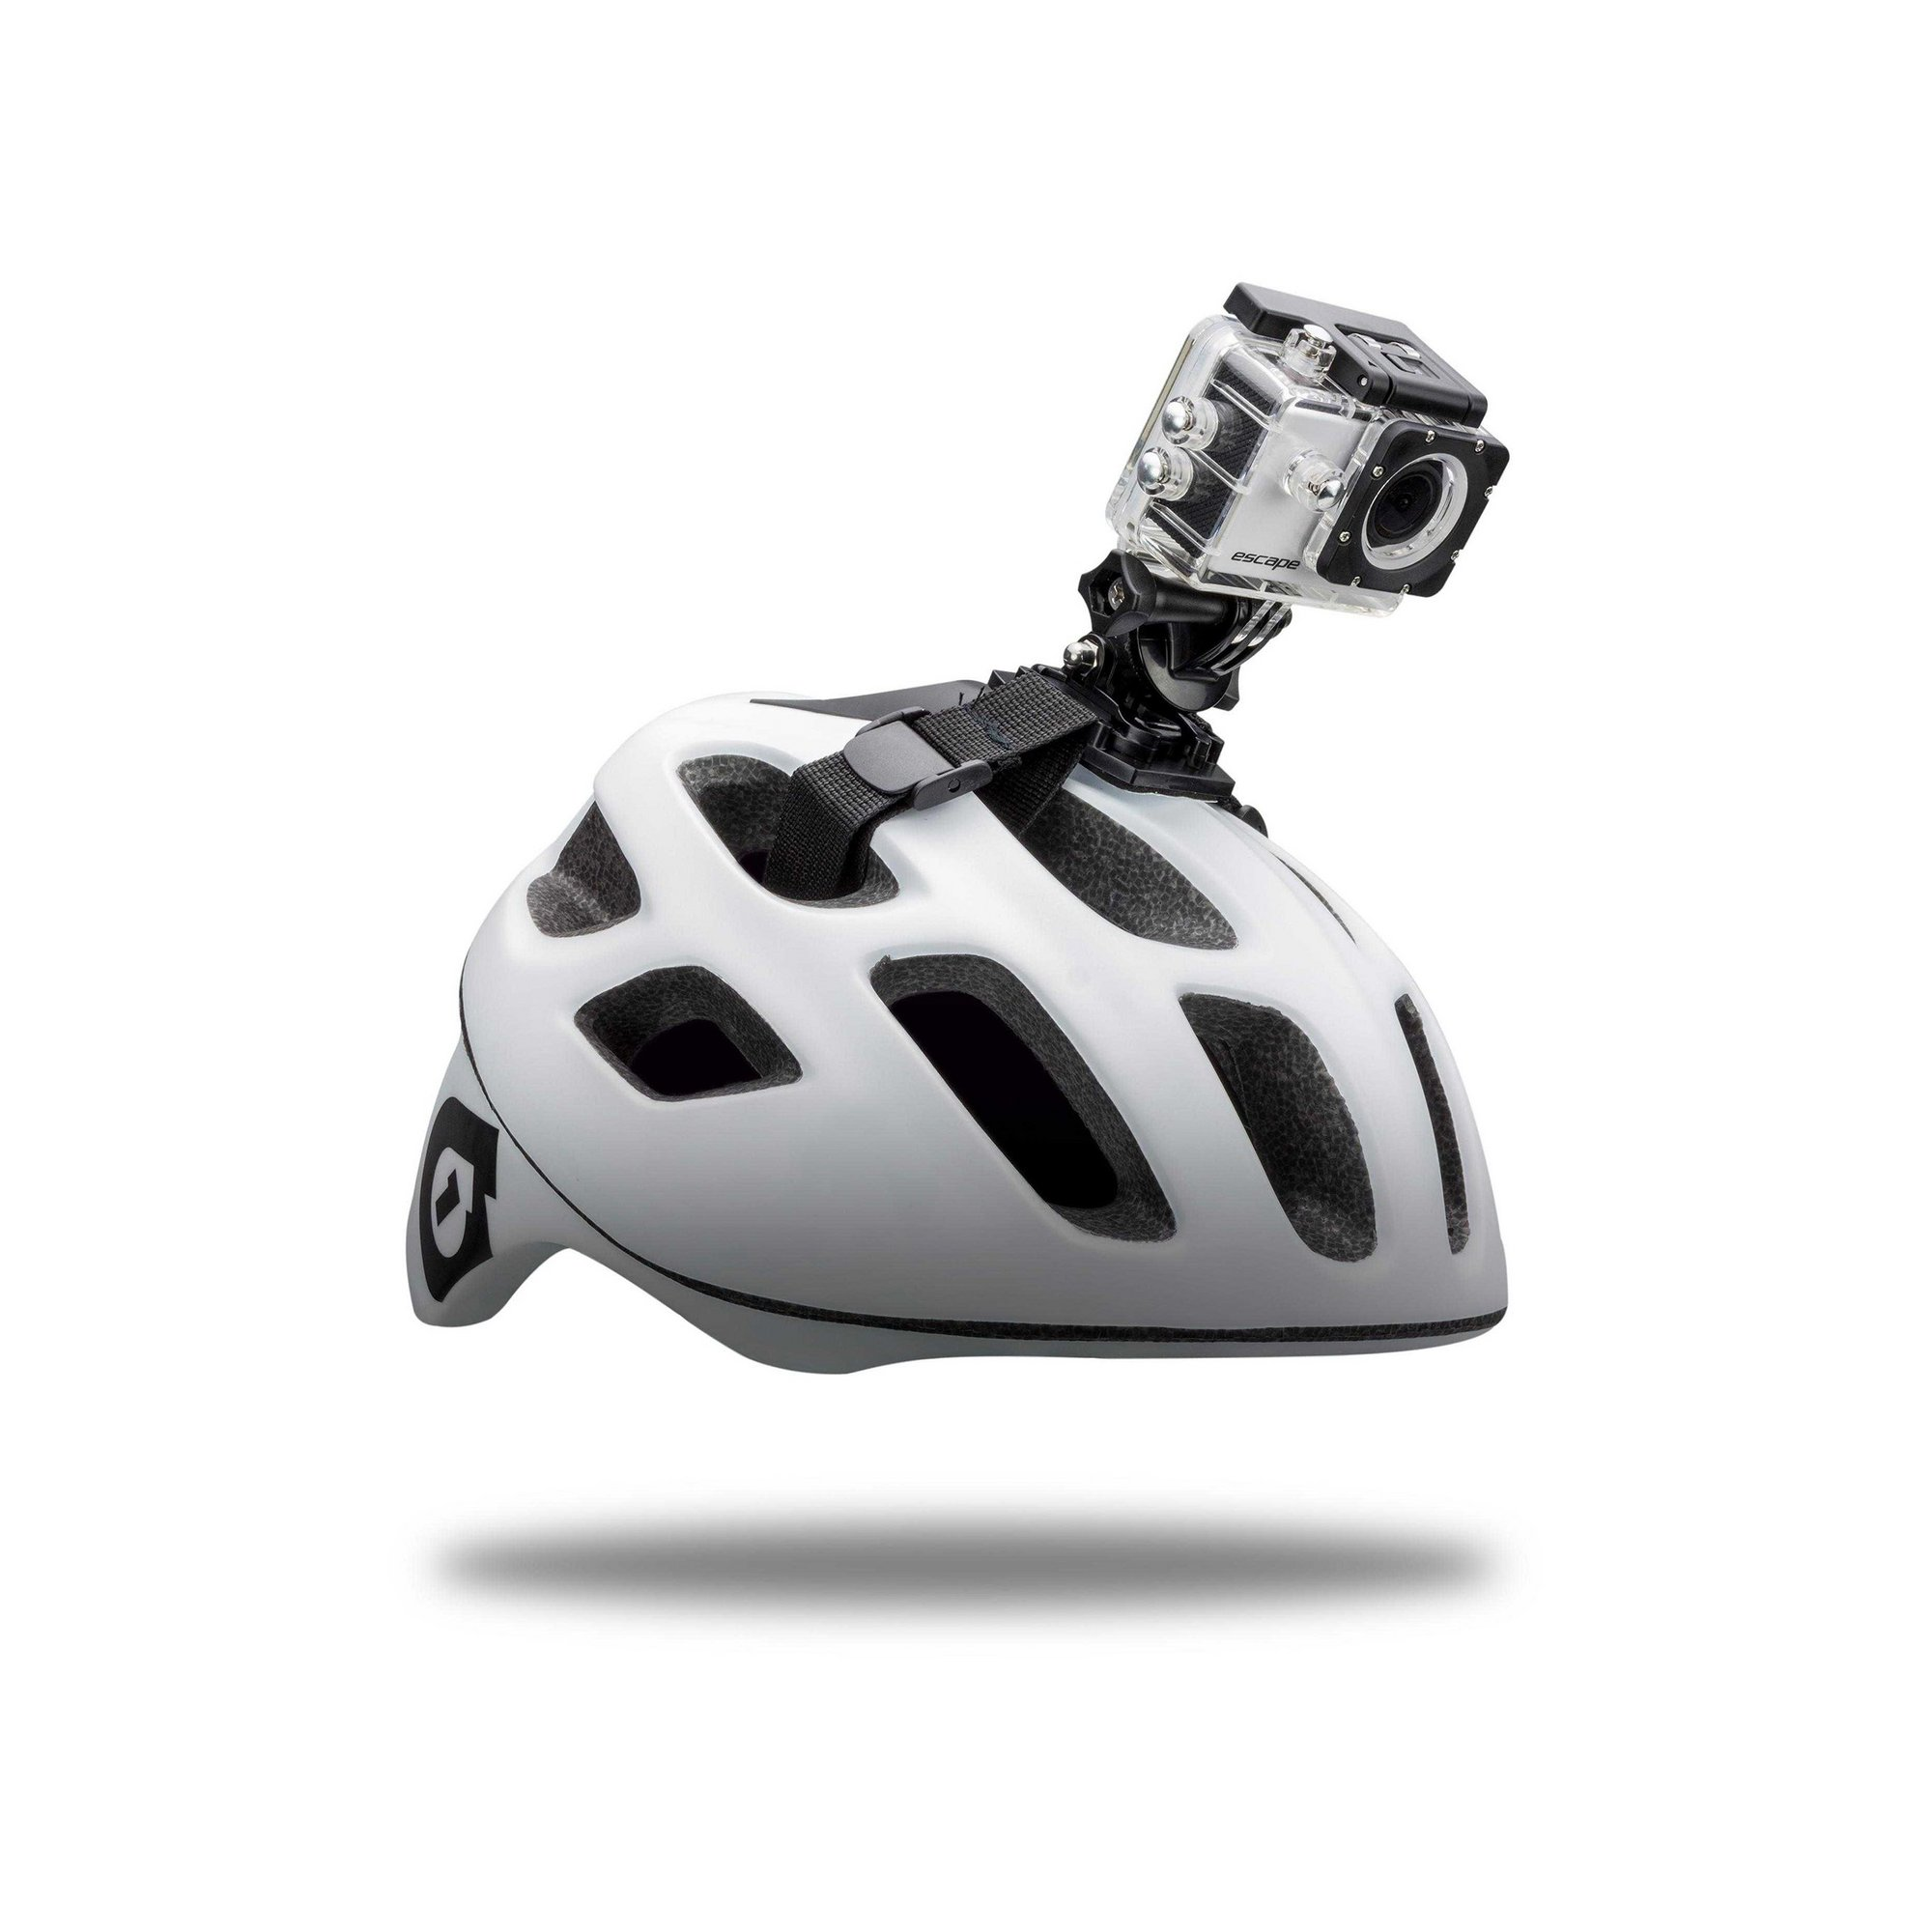 Image of KitVision Action Camera Helmet Mount